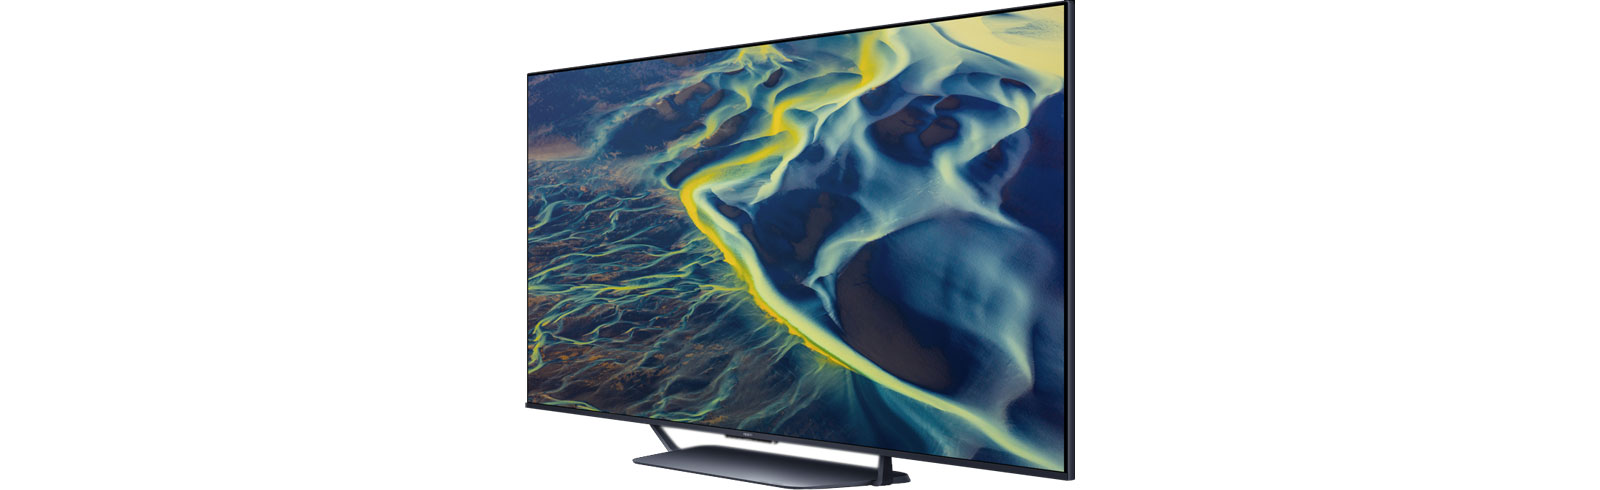 The 4K QLED Oppo Smart TV S1 65 goes official - specifications and price